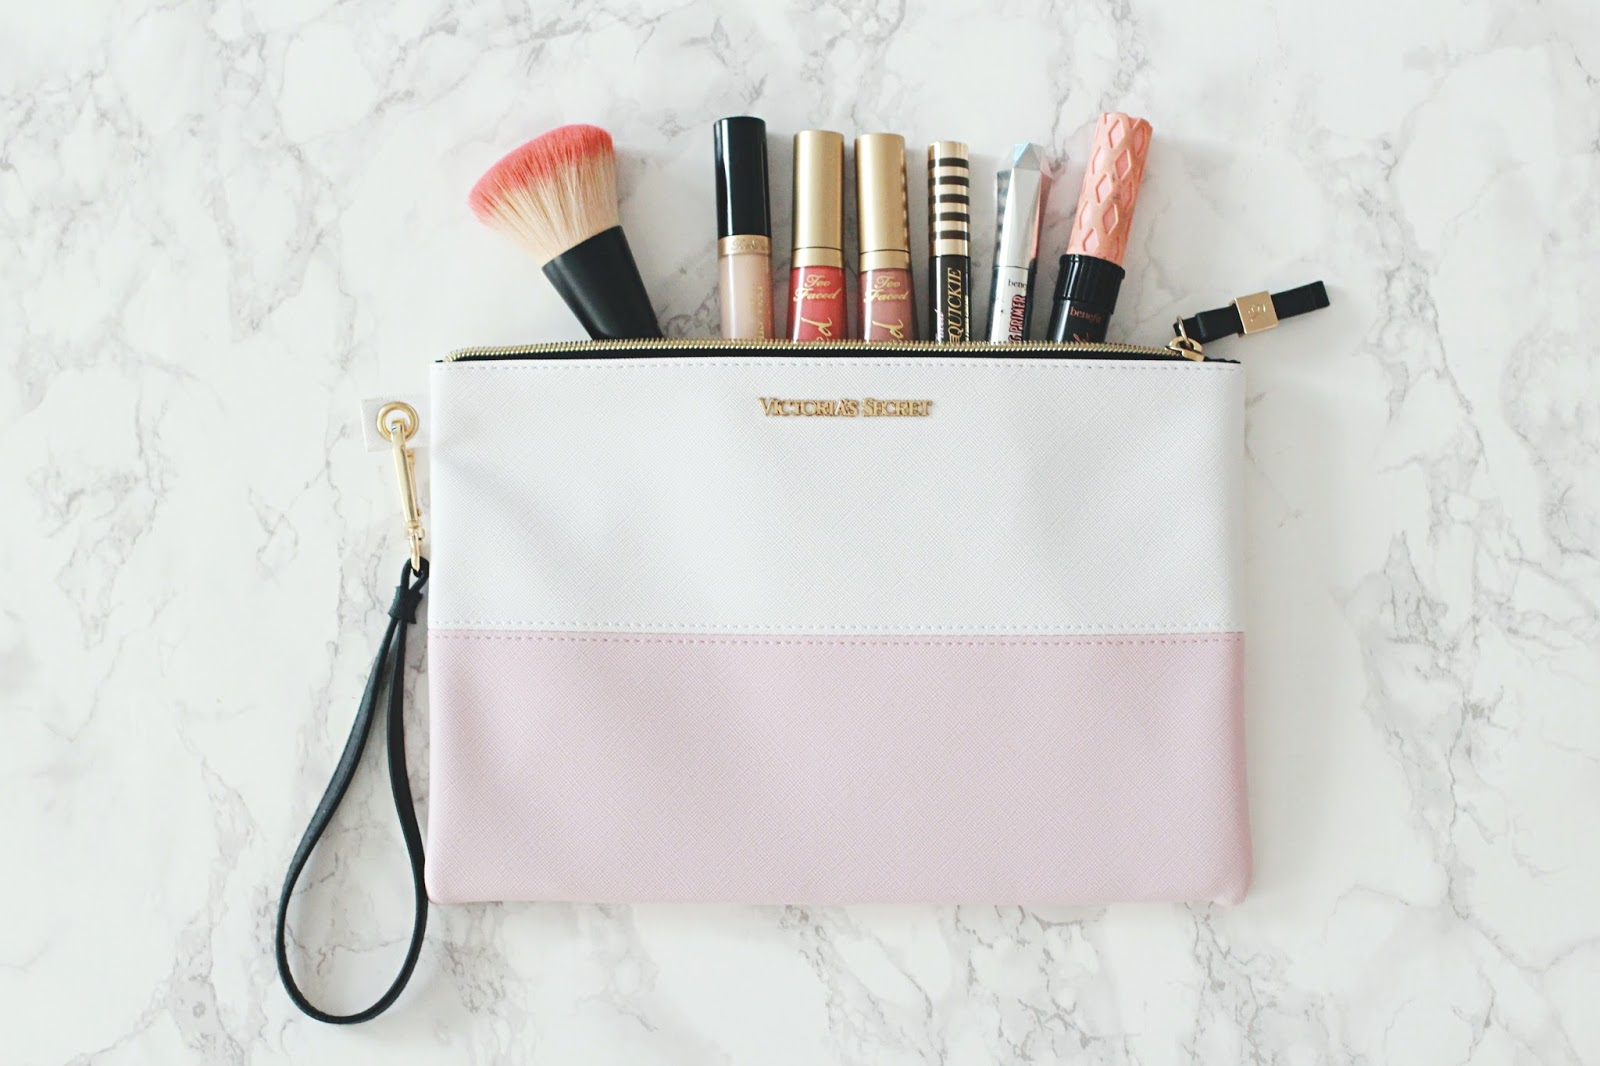 trousse maquillage victoria's secret